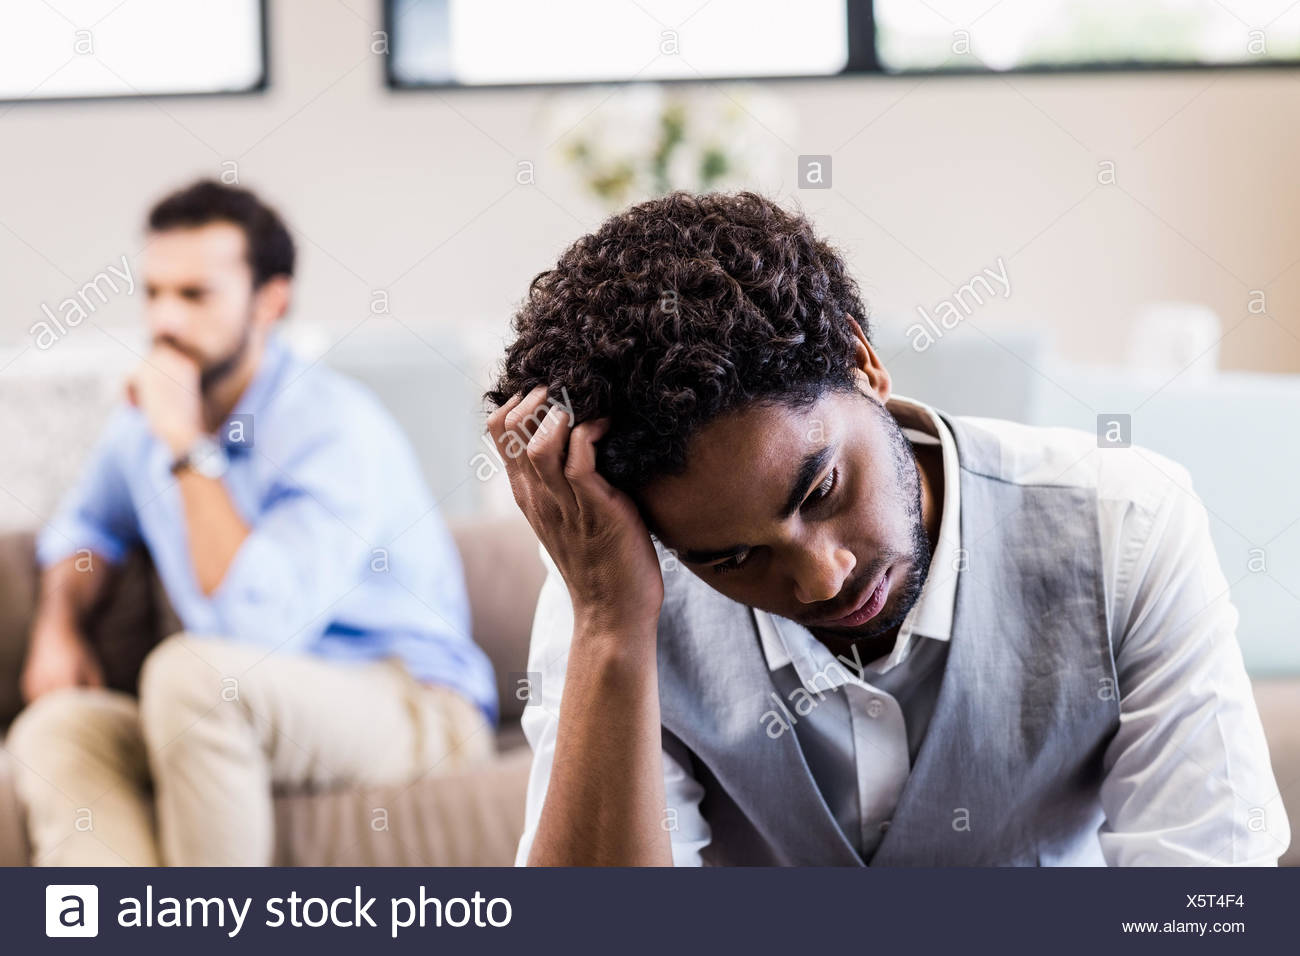 Troubled man sitting in foreground - Stock Image